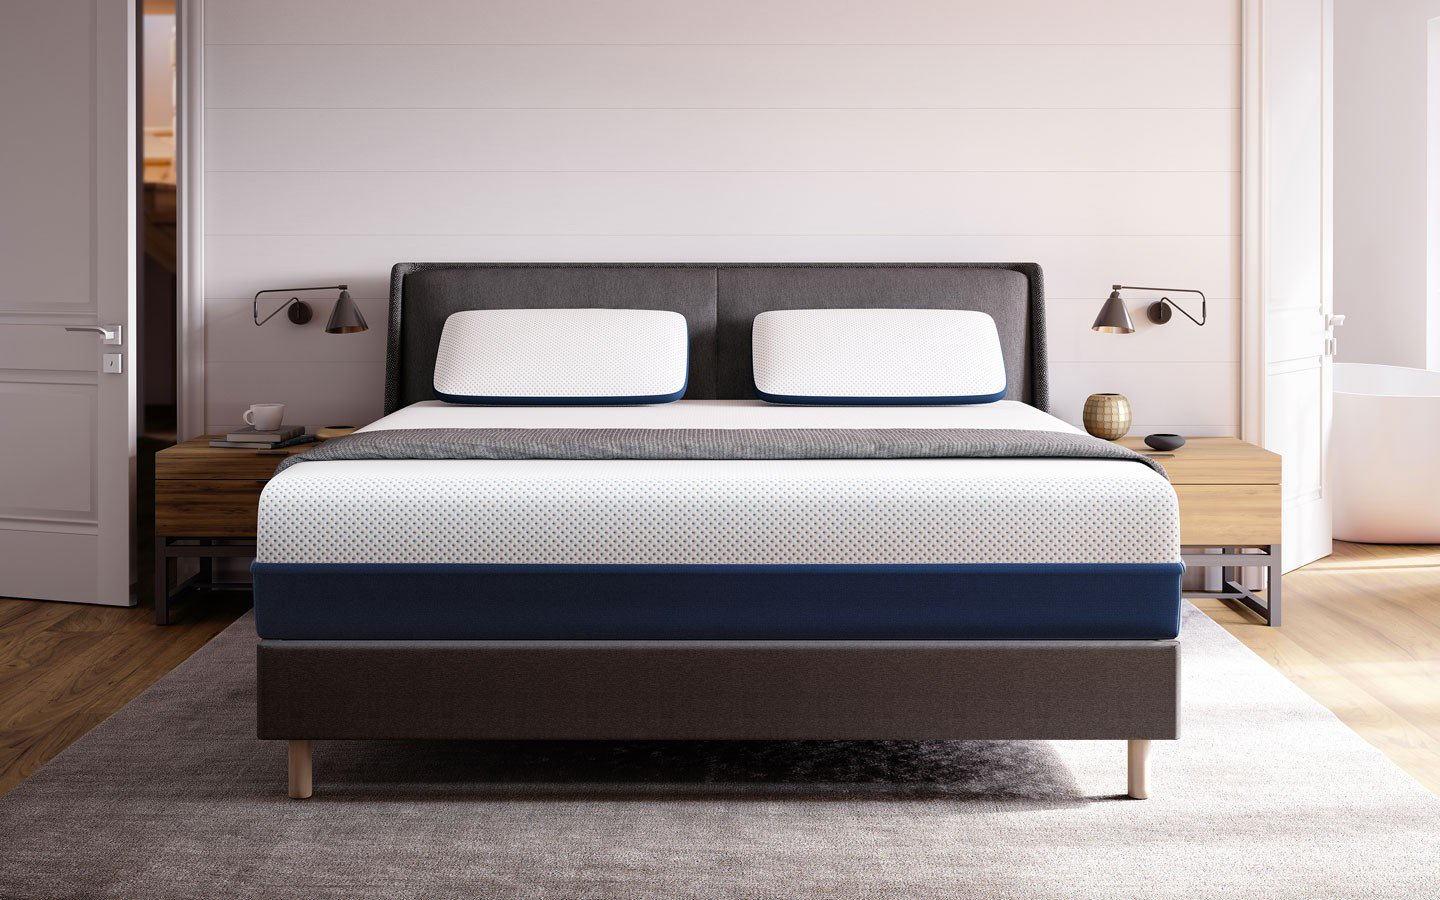 Best Mattress For Back Pain 2021 Reviews Buyer S Guide